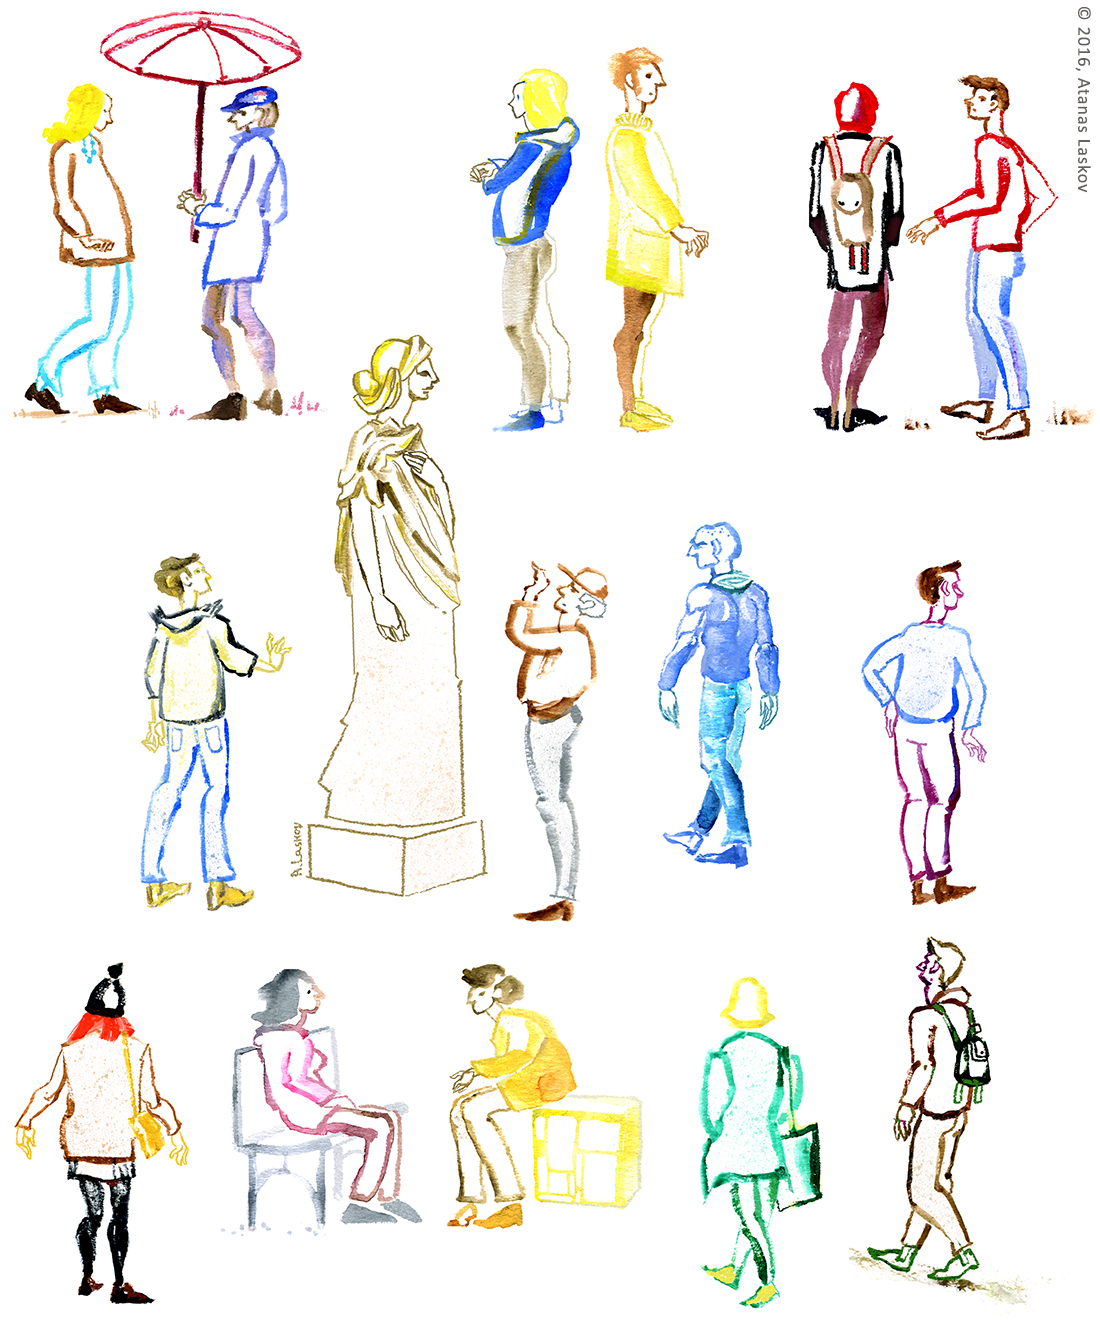 Laskov People Sketches